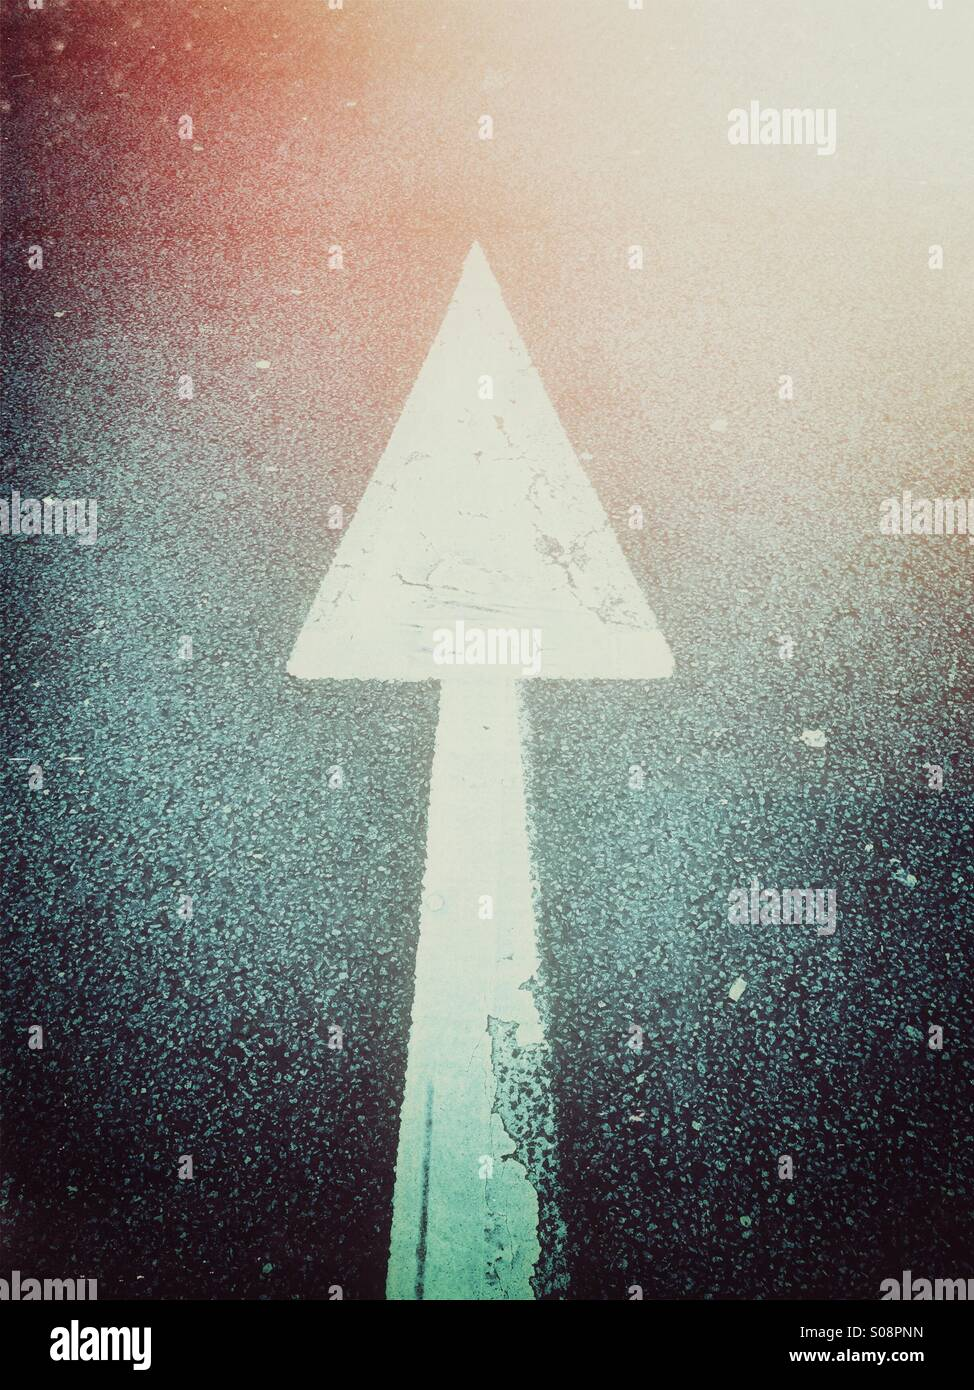 Direction arrow on asphalt - Stock Image